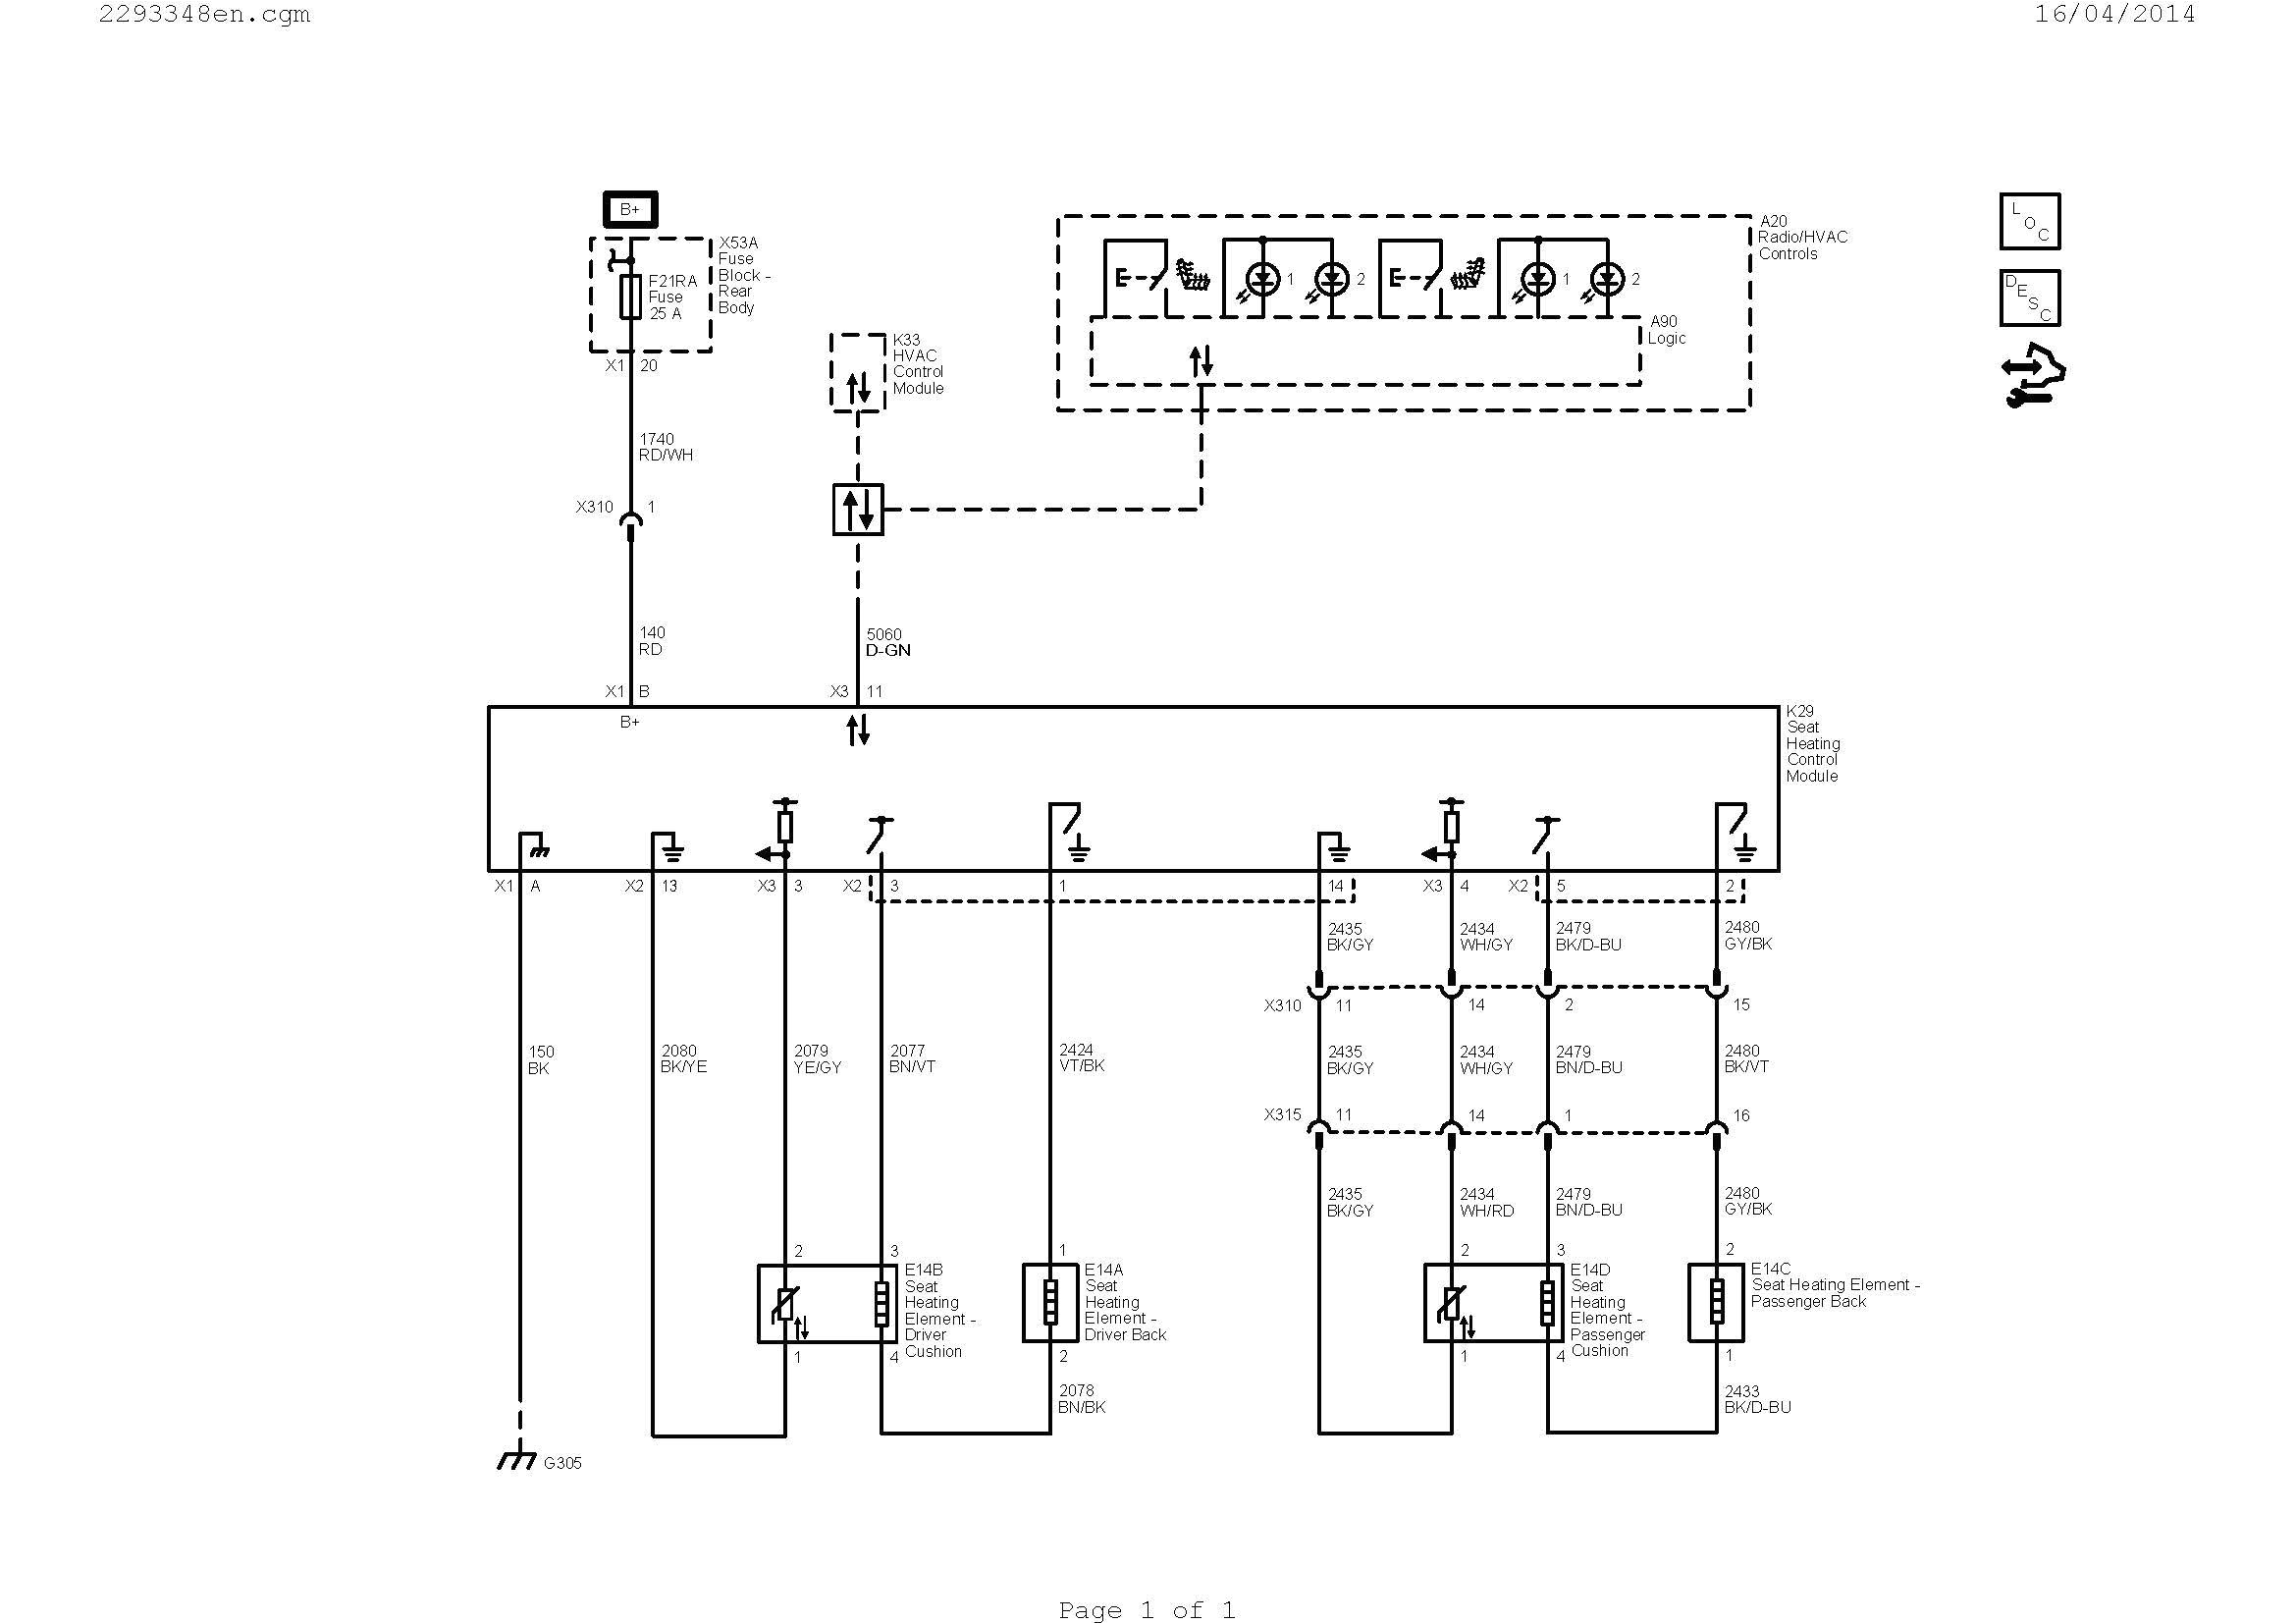 outdoor light switch wiring diagram fresh fresh wiring diagram for outdoor light switch joescablecar